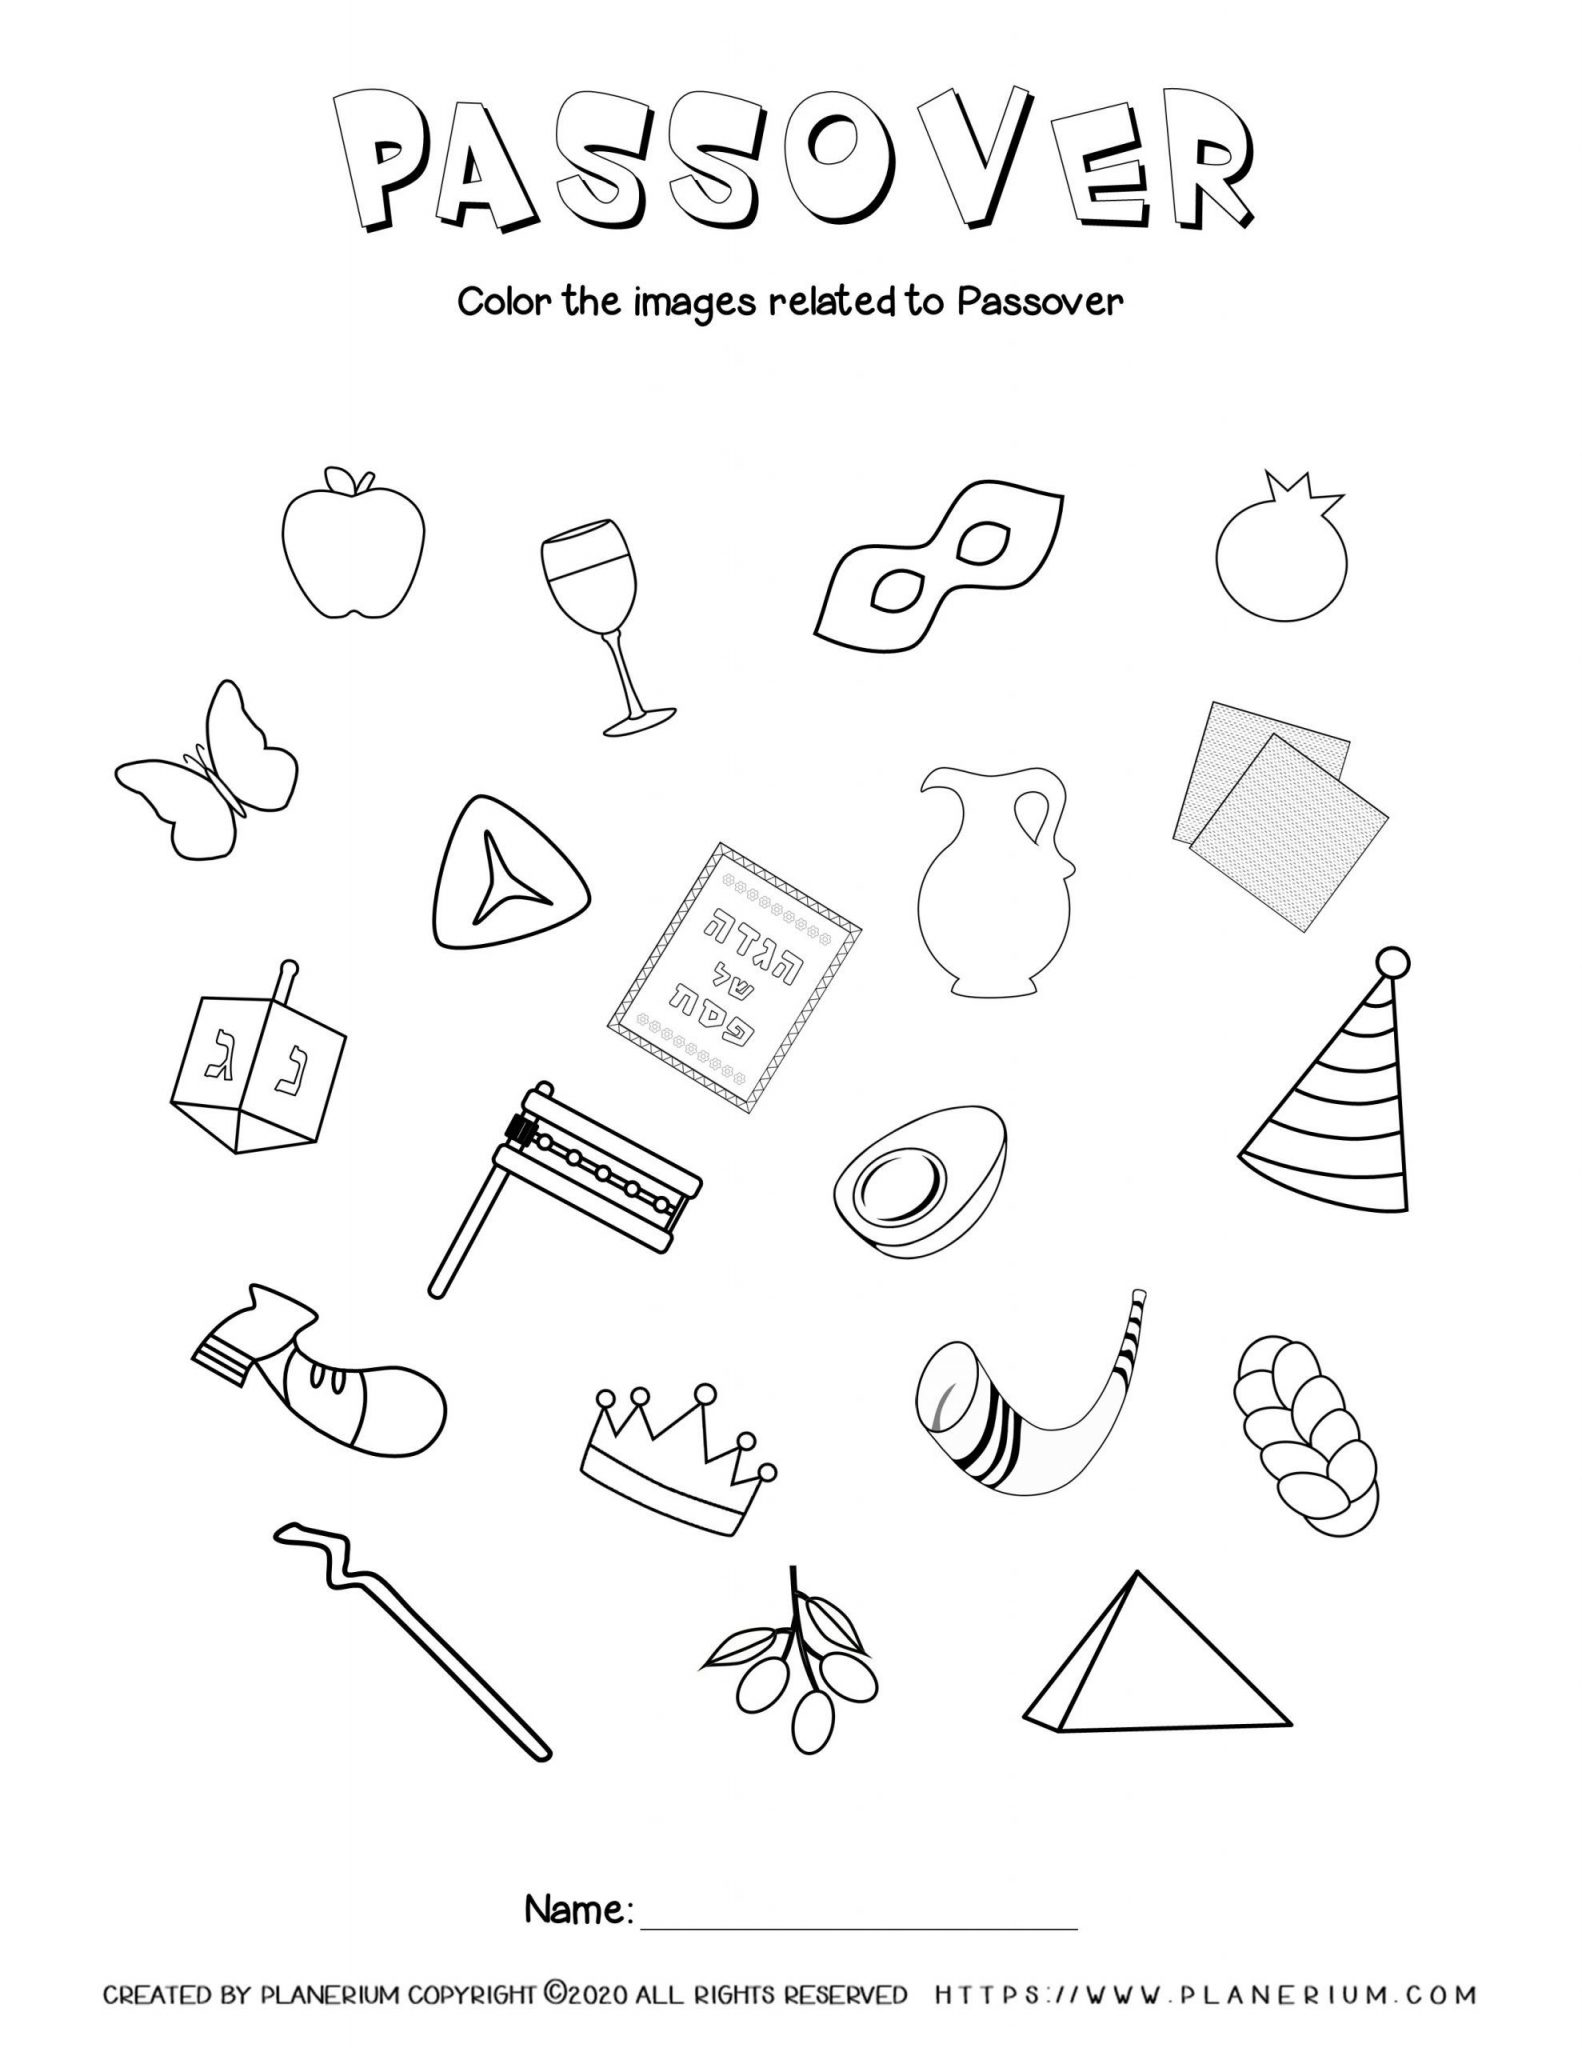 Passover worksheet - Related symbols - English title